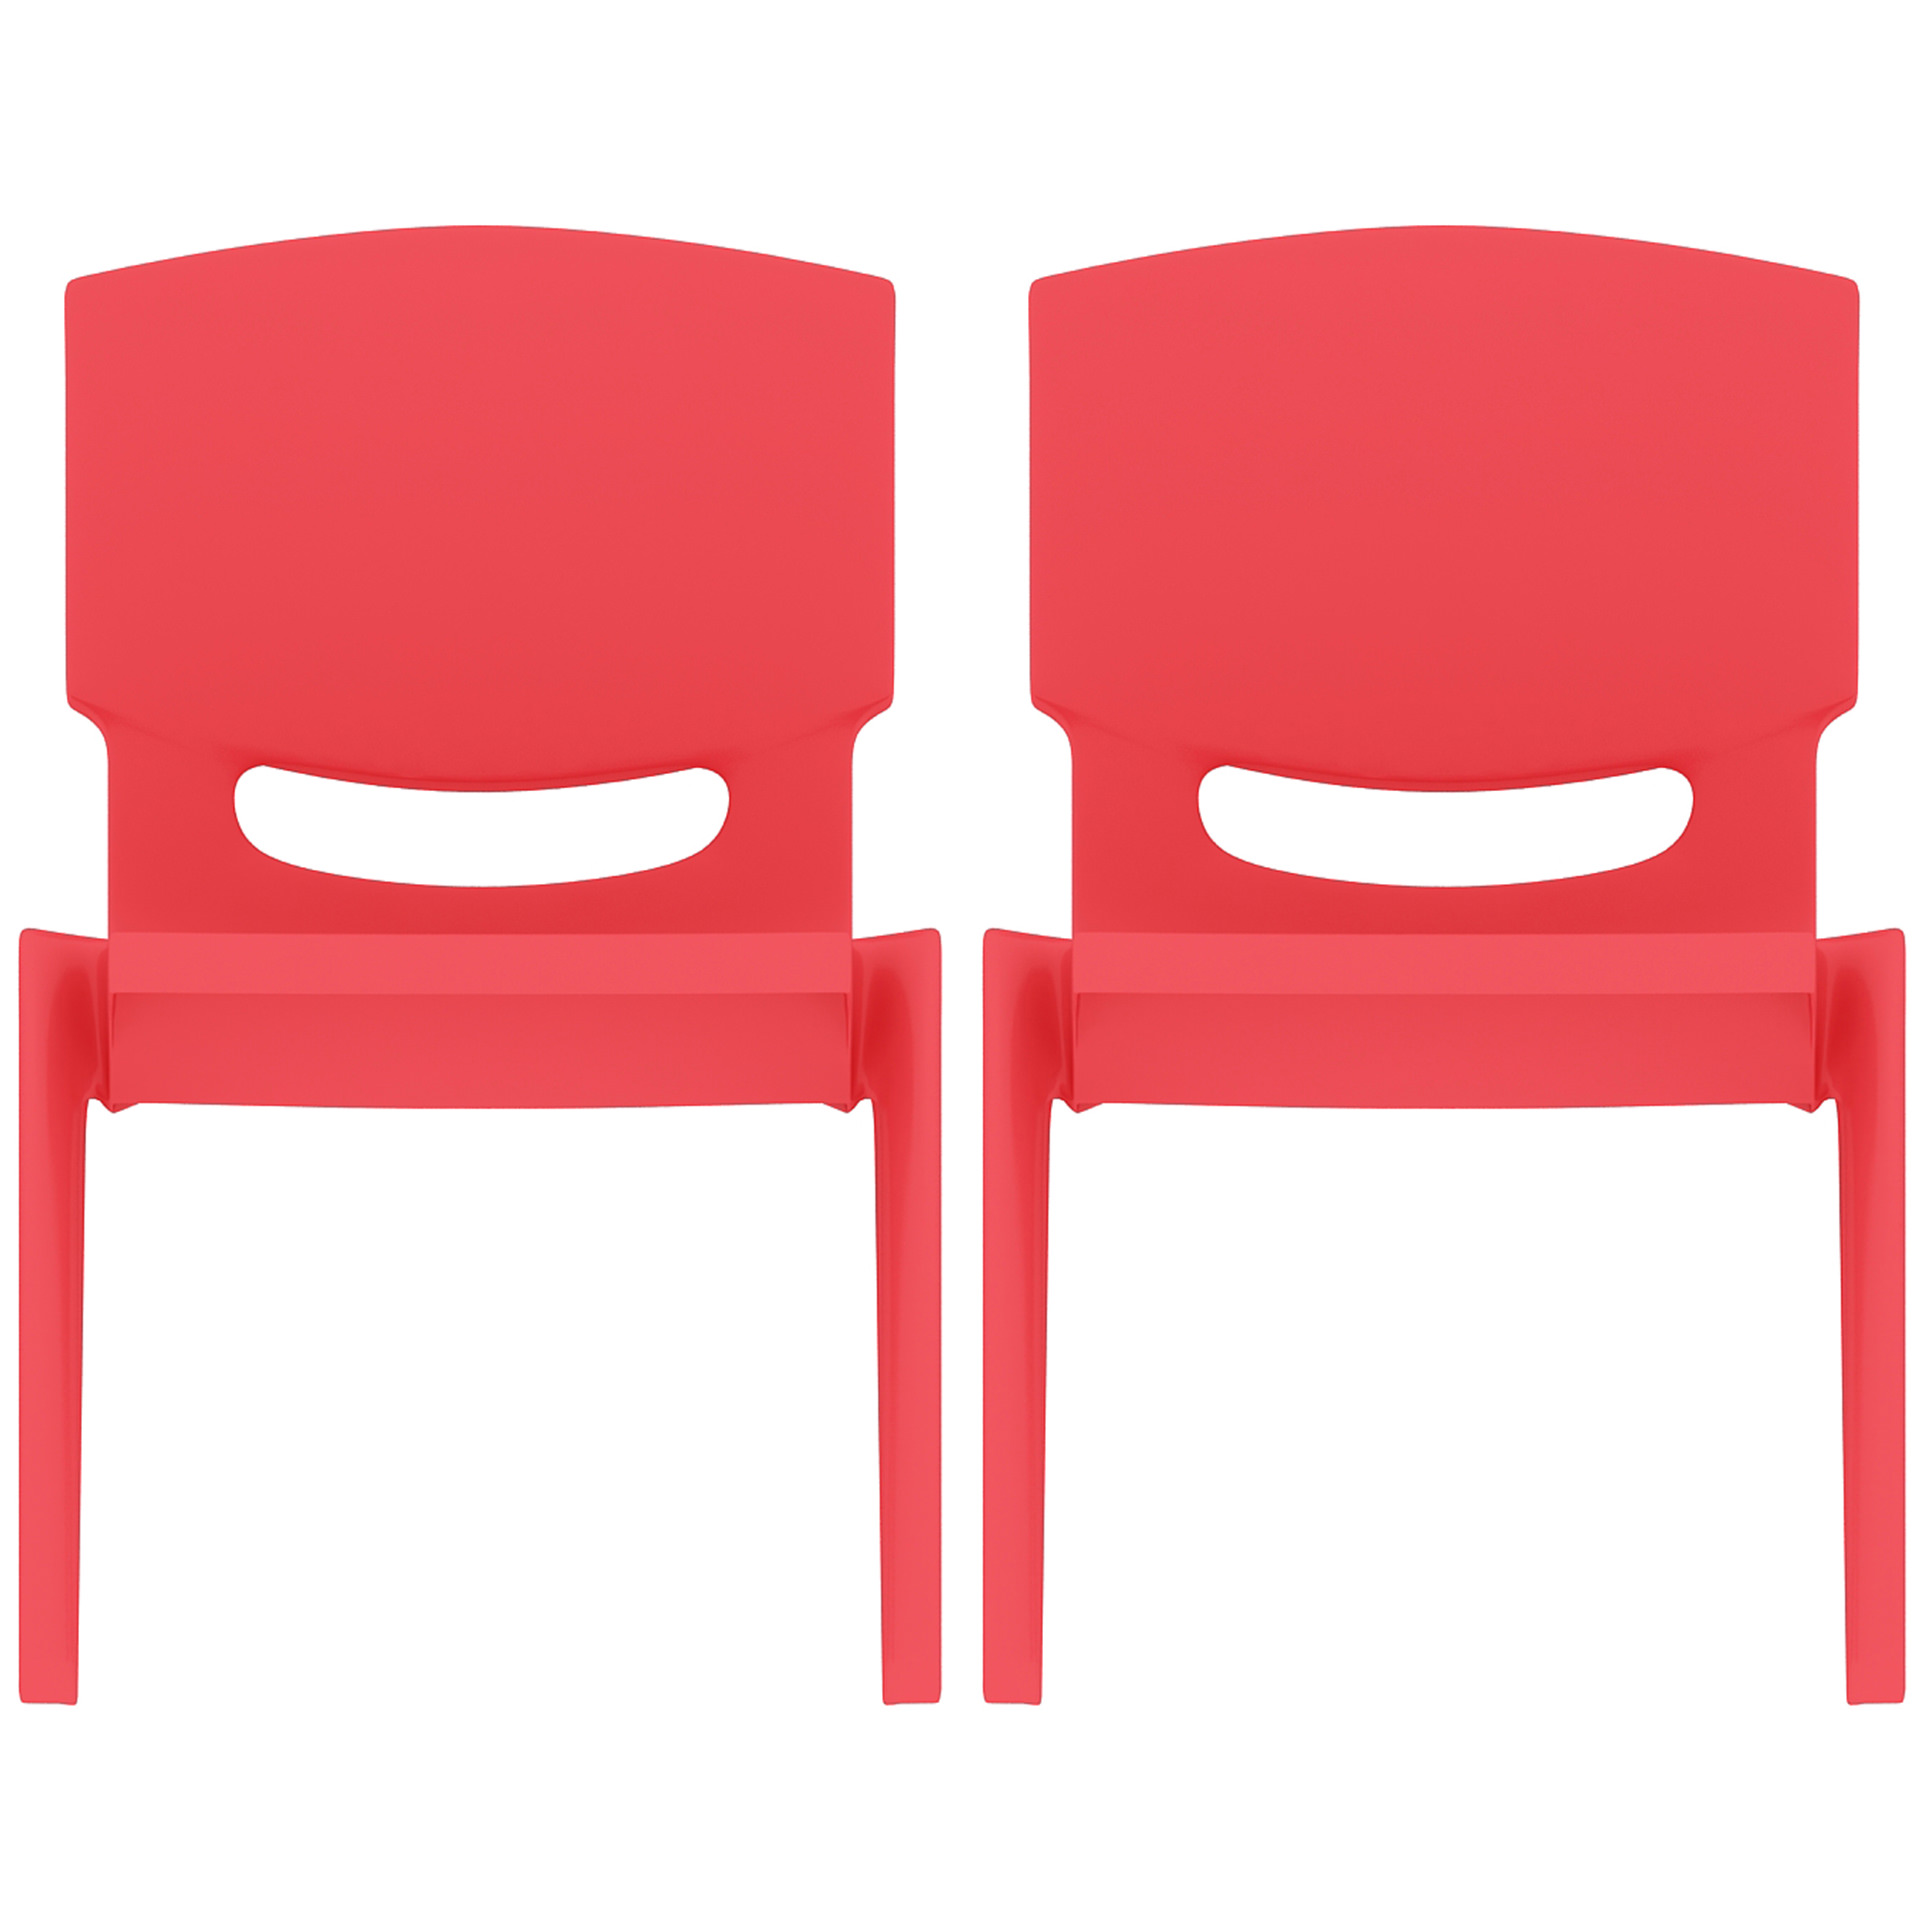 "2xhome - Set of 2 (Two) Red - Kids Size Plastic Side Chair 12"" Seat Height Childs Chair Childrens Room School Chairs No Arm Arms Armless Molded Plastic Seat Stackable"